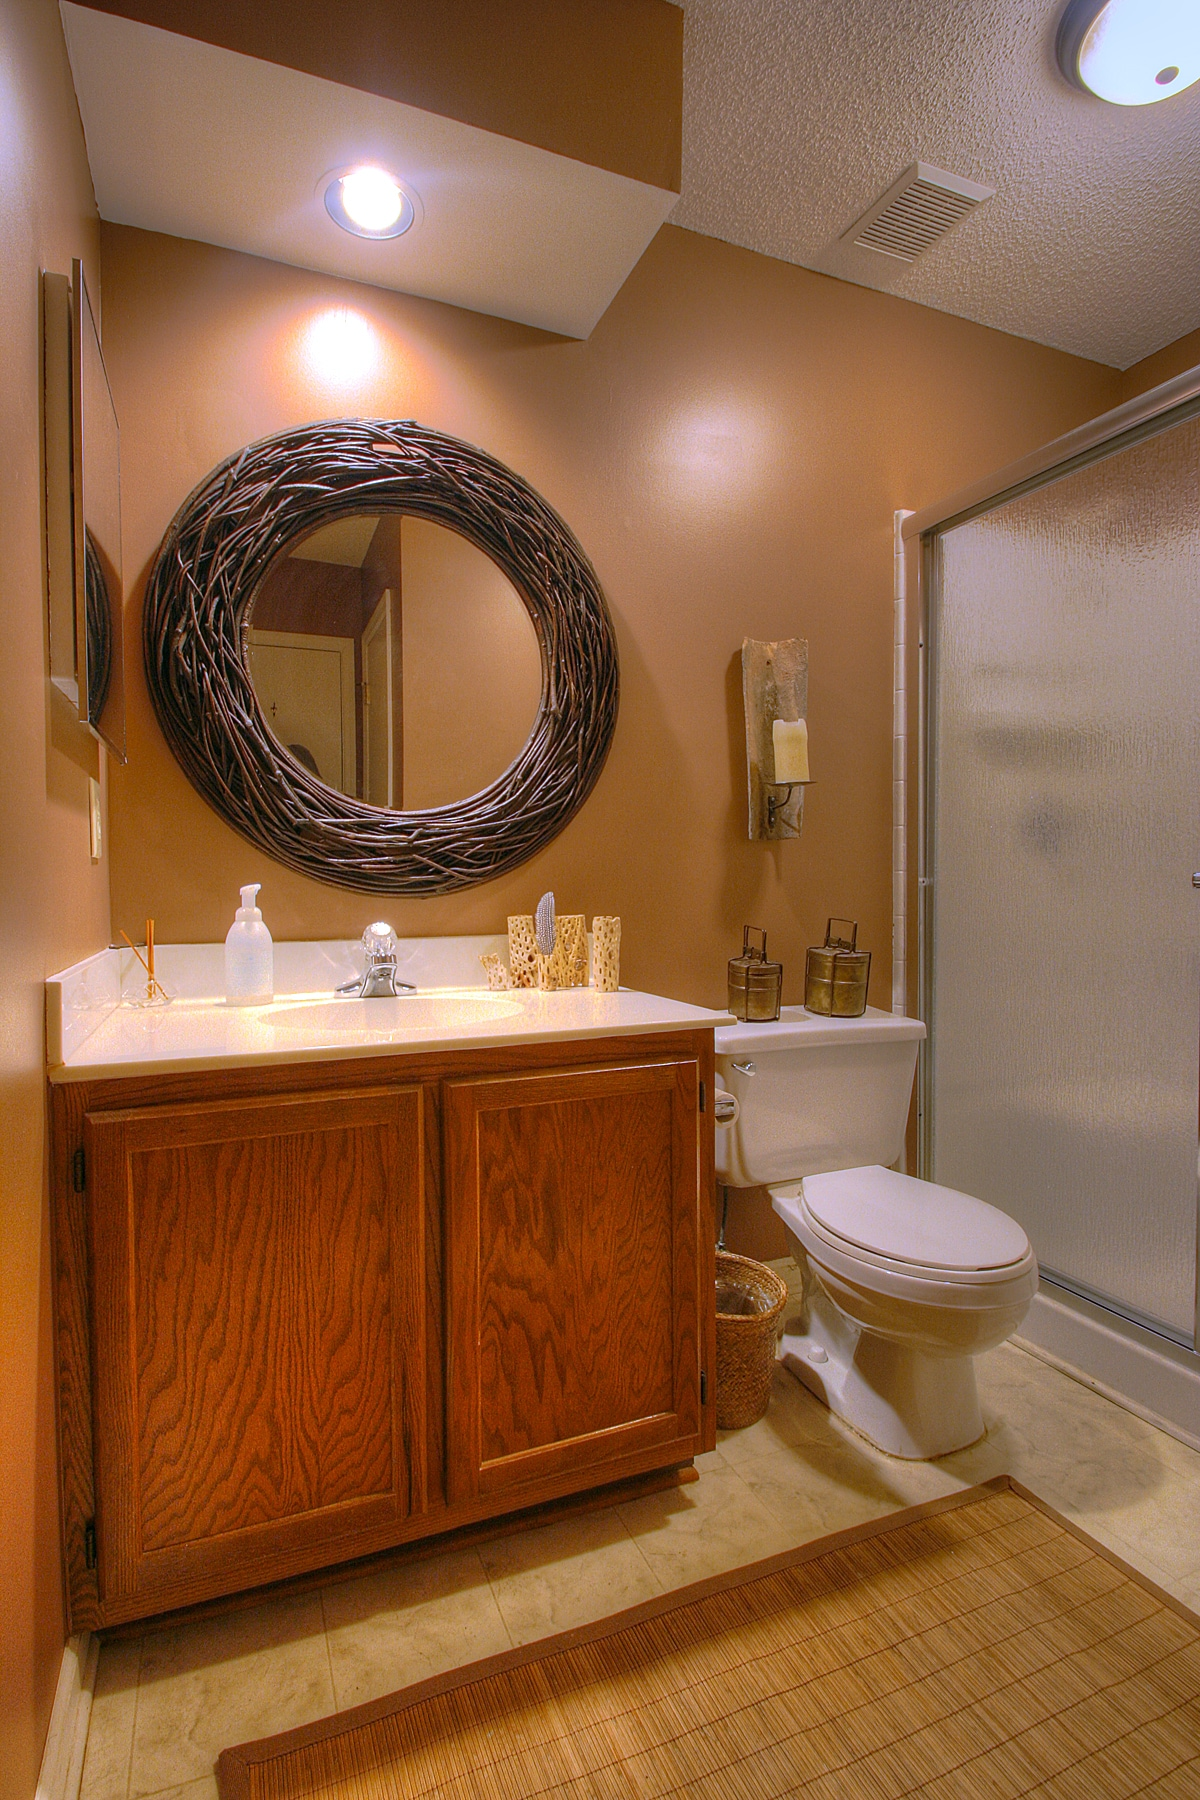 Guest Bathroom - view from hallway entry (directly across hallway from full Guest Bedroom 1)